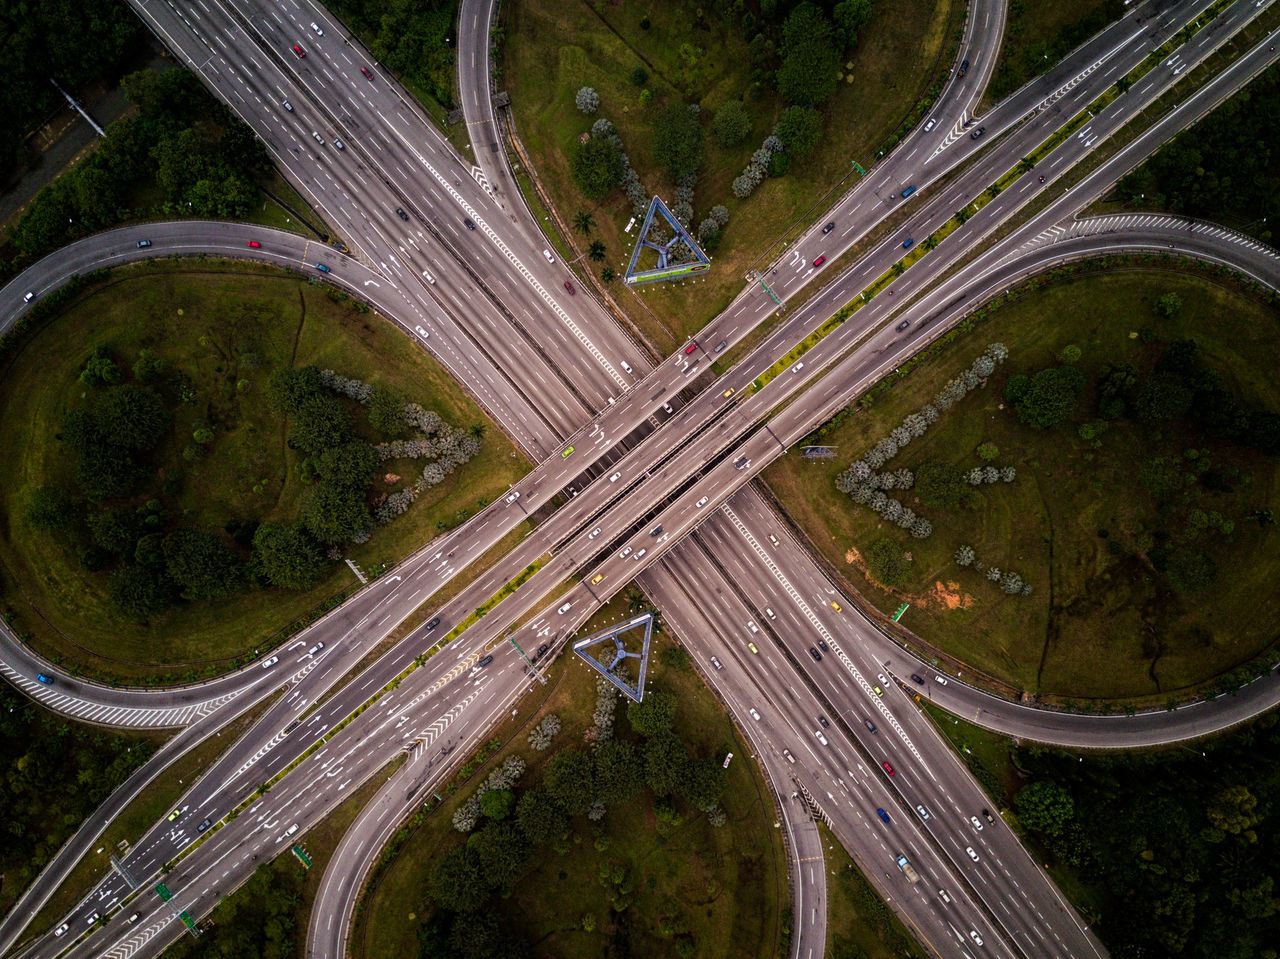 Floral Pattern of a Highway Interchange - aerial view Aerial Aerial Shot Aerial View Beauty In Nature Cars Day Directly Above Drone  Floral High Angle View Highway Interchange  Landscape Motorway Nature No People Outdoors Pattern Road Roundabout Rural Scene Transportation Winding Road